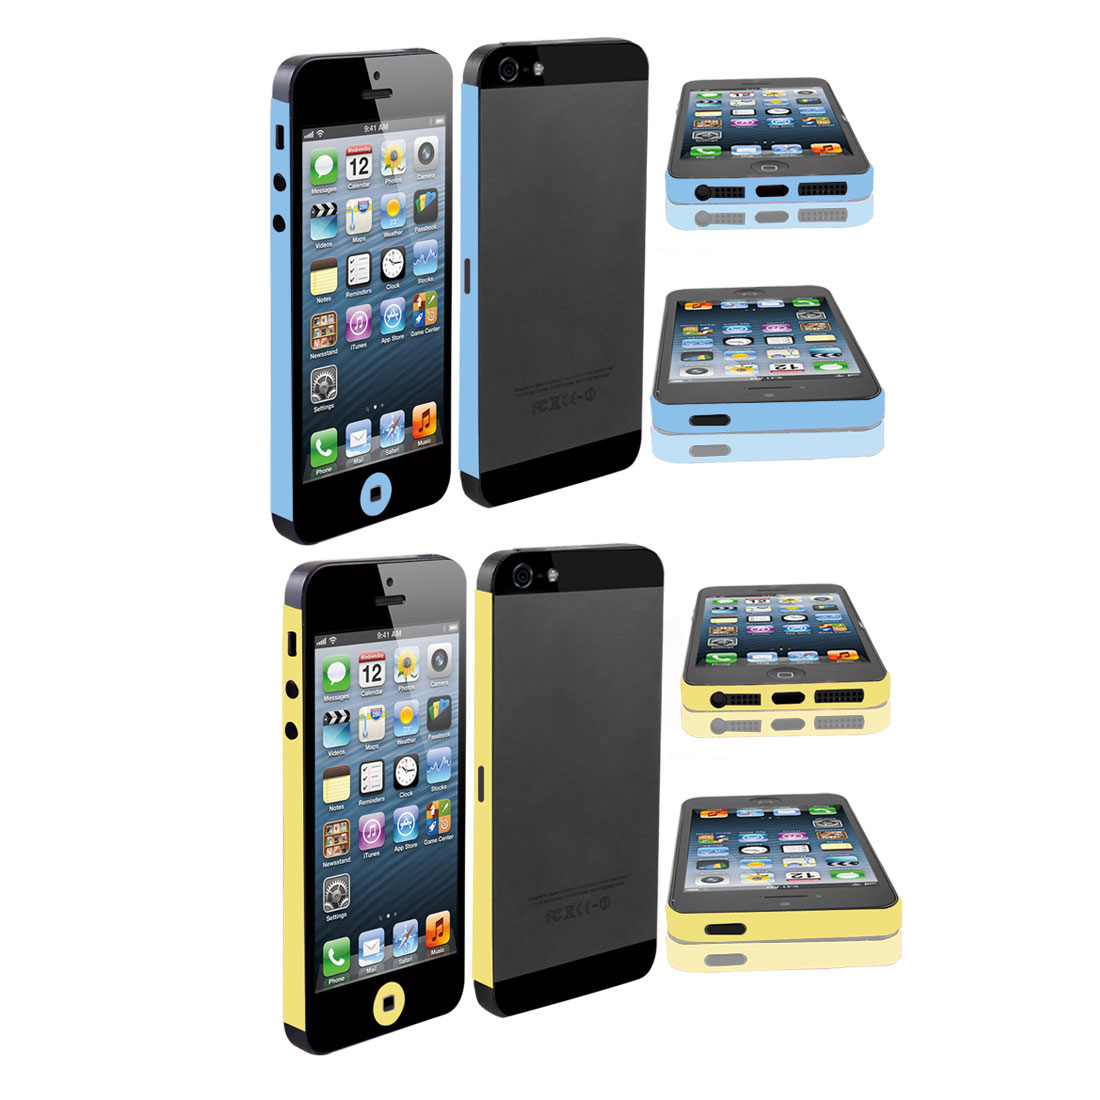 Blue Yellow Vinyl Side Edge Wrap Decal Skin Sticker 2 Pcs for iPhone 5 5G 5th